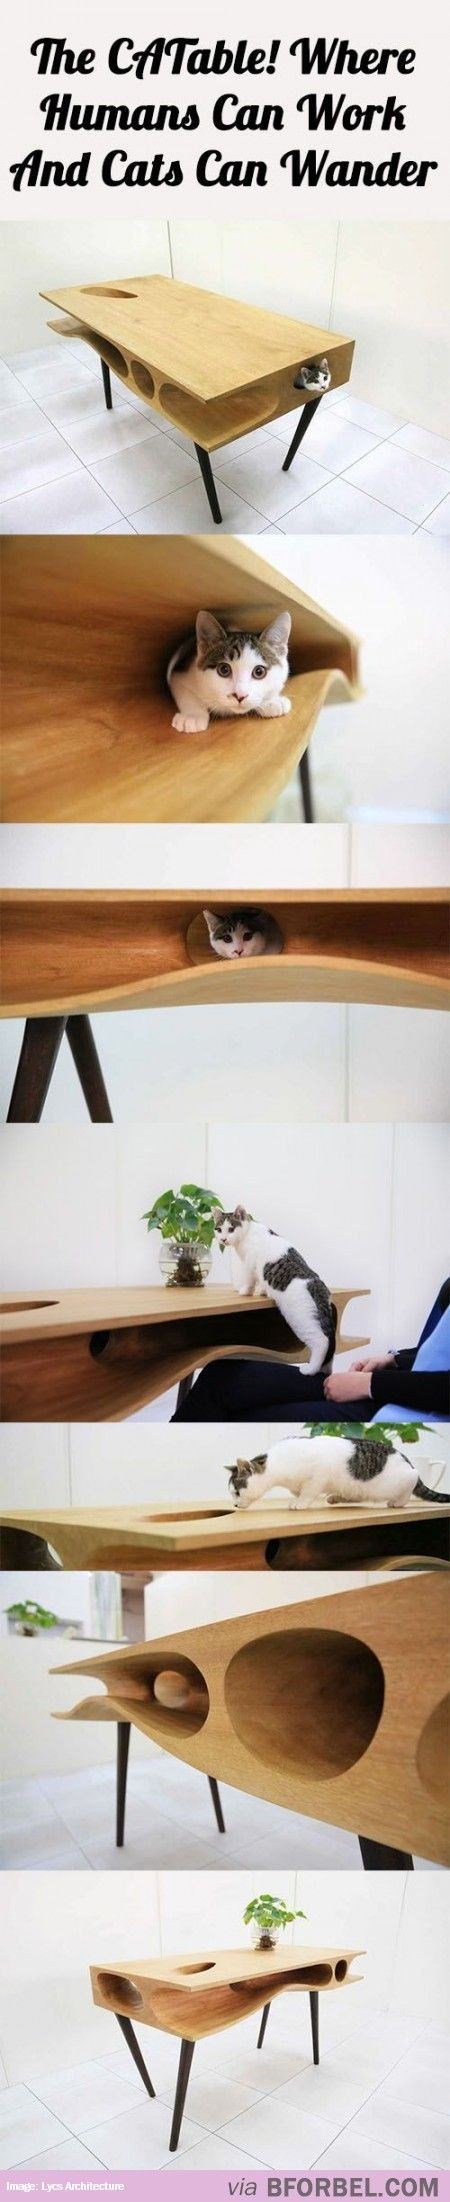 Finally A Way To Keep Cats From Wandering Onto Your Laptop… The CATable!